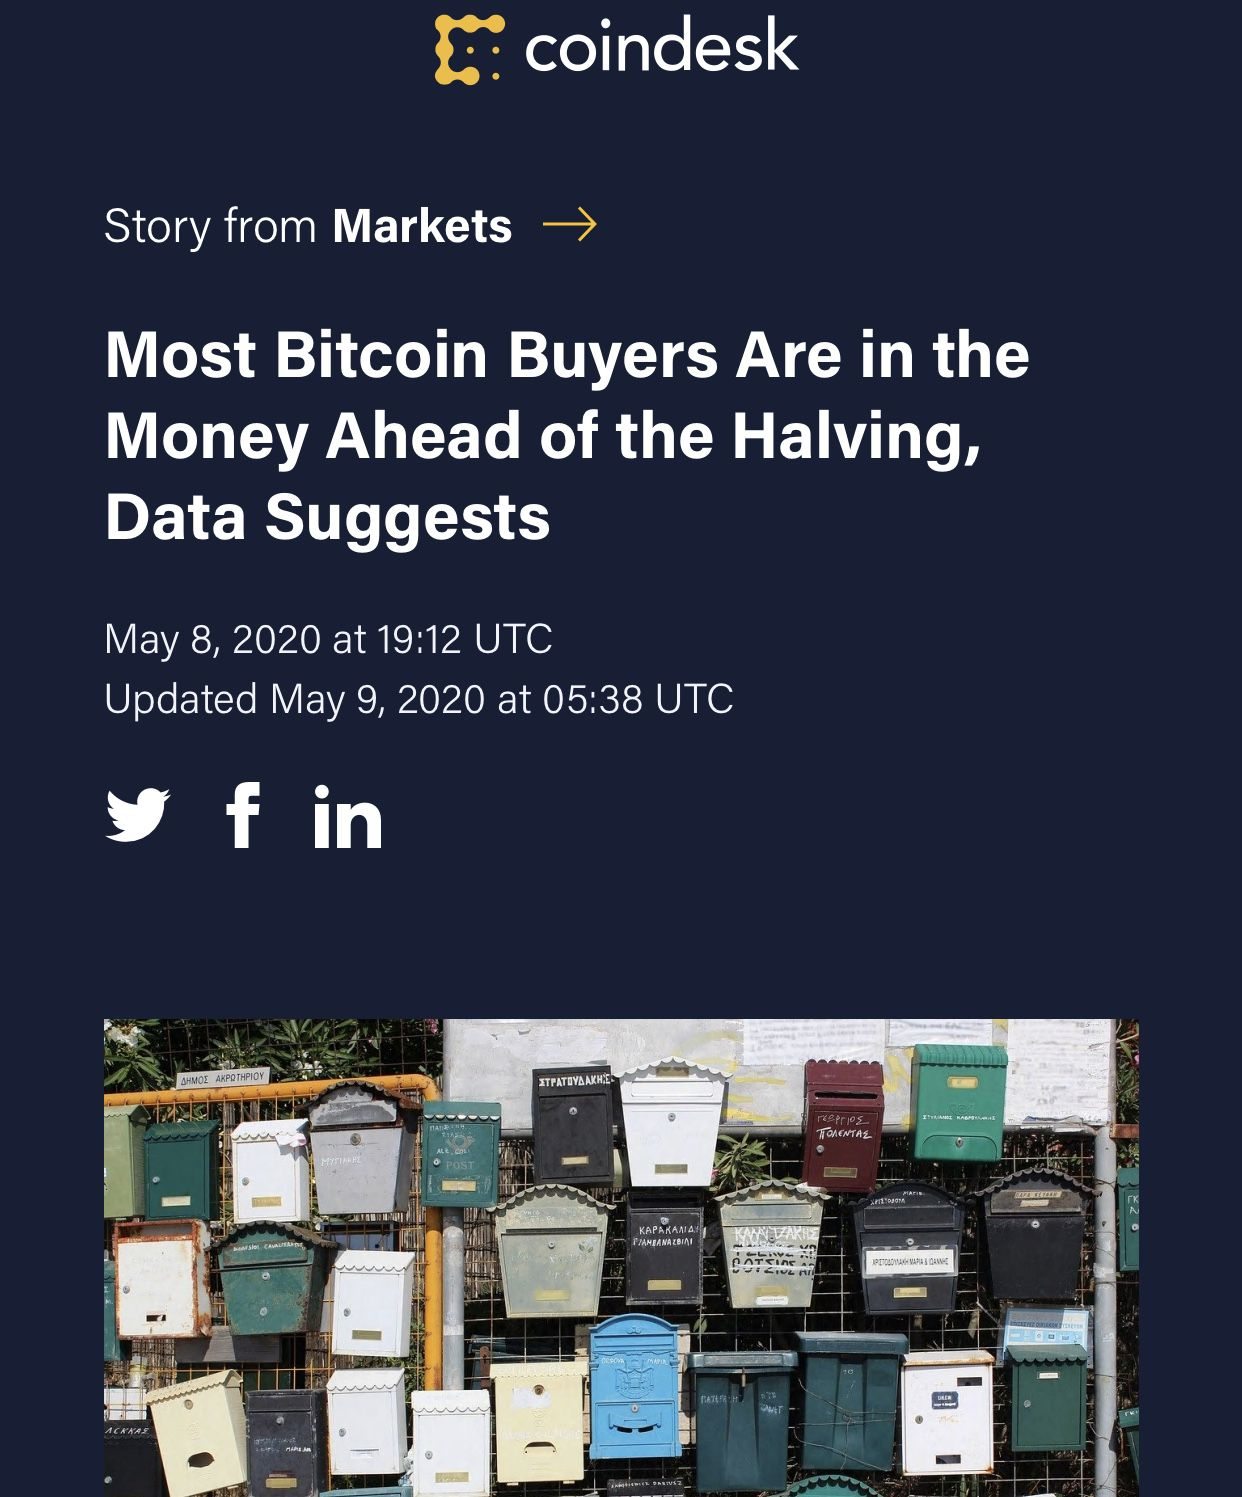 Most Bitcoin Buyers Are In The Money Ahead Of The Halving 大多數比特幣買家都在減半中賺錢 Https Www Coindesk Com Most Bitcoin Buyers A In 2020 Stock Market Marketing Bitcoin